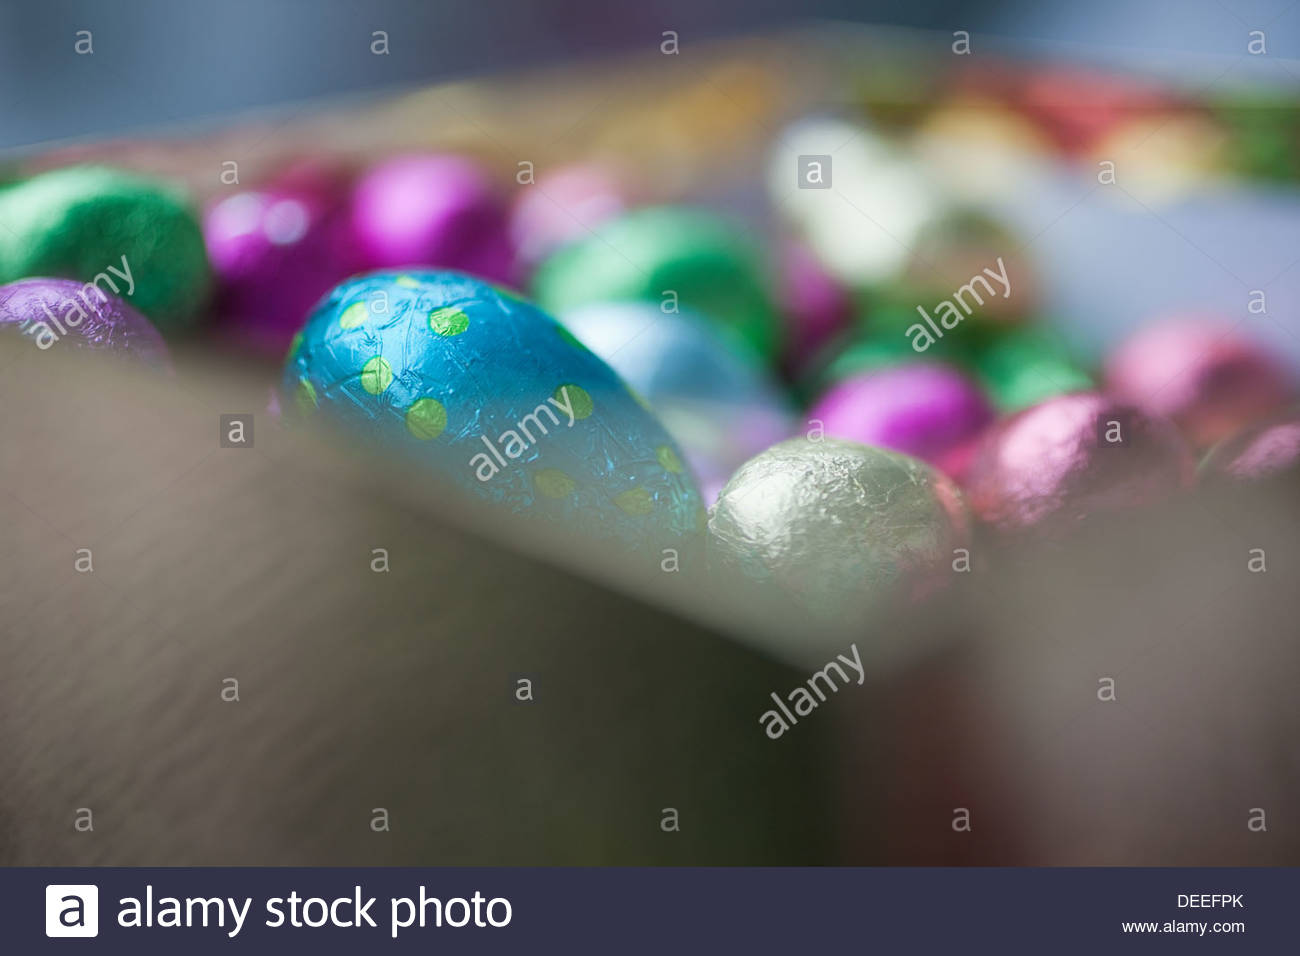 Foil-wrapped chocolate eggs - Stock Image